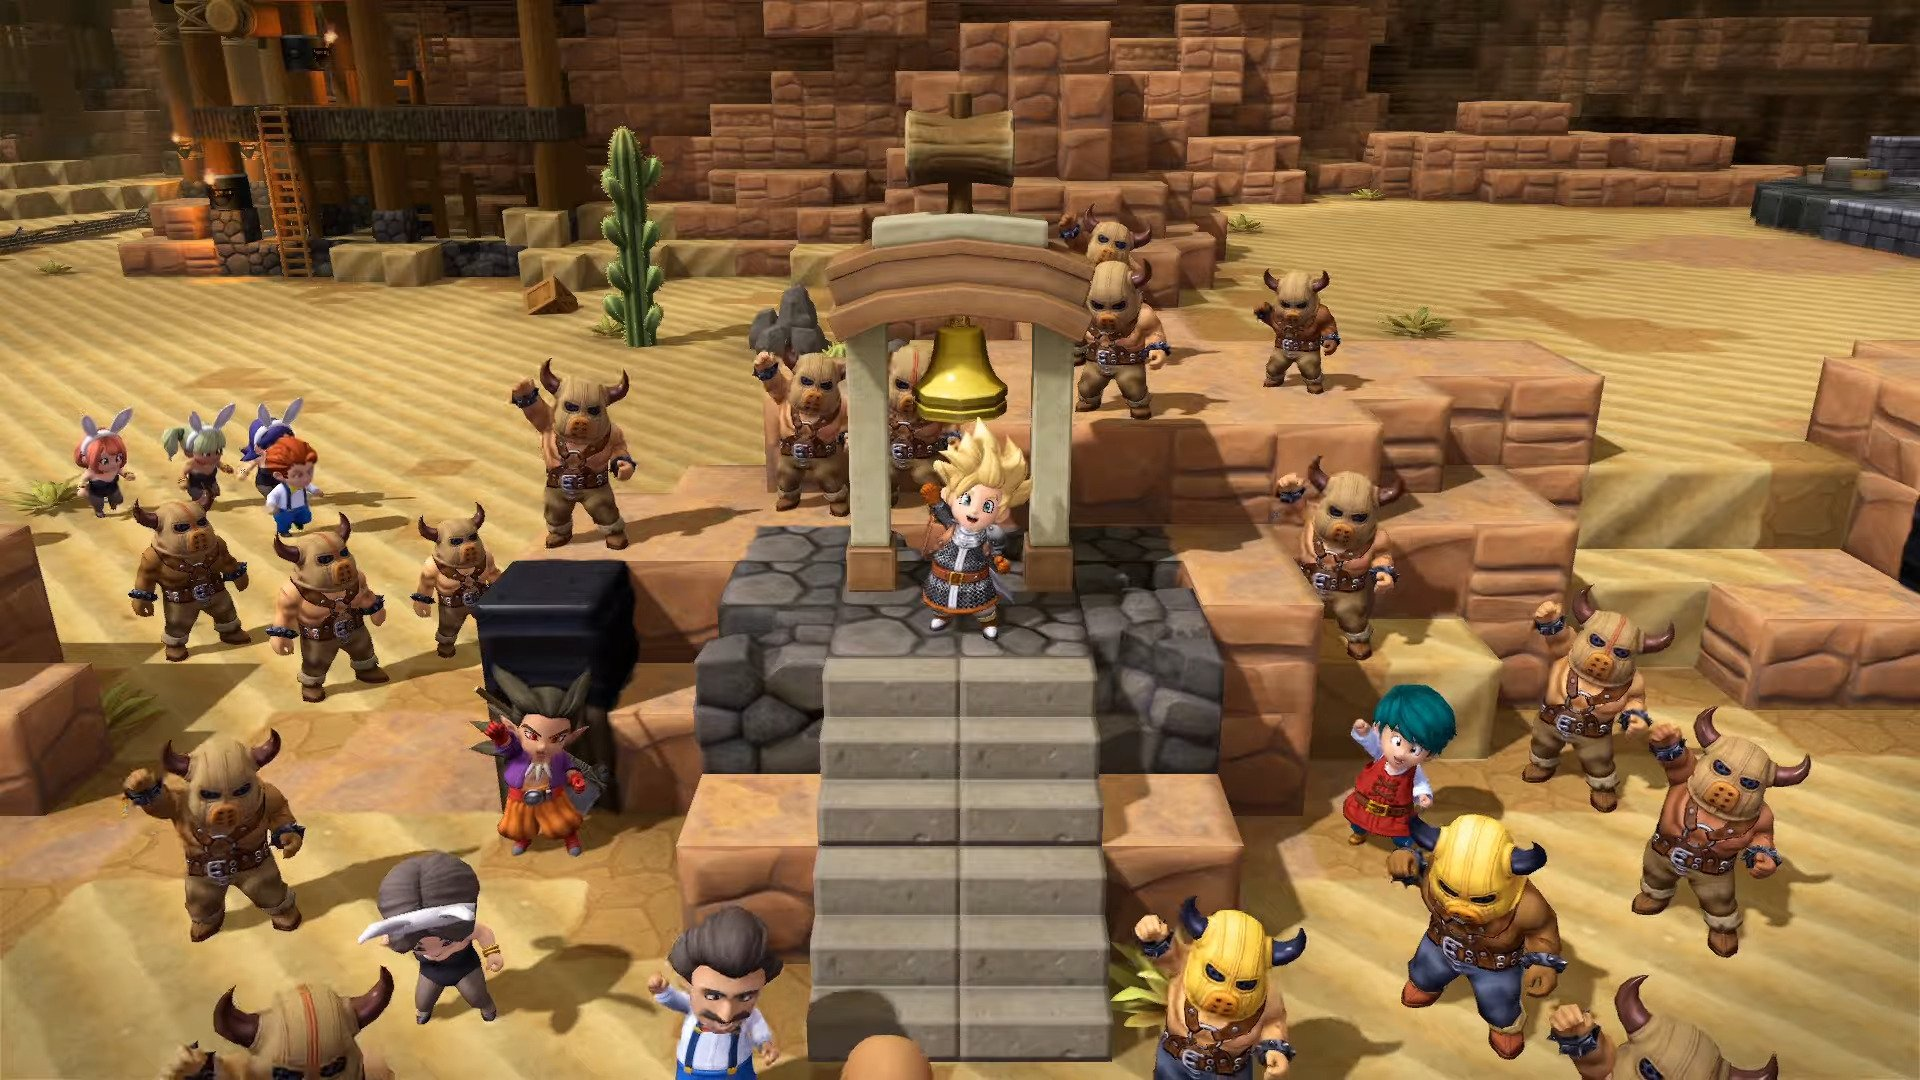 Dragon Quest Builders 2 Mythril Location Find Mythril